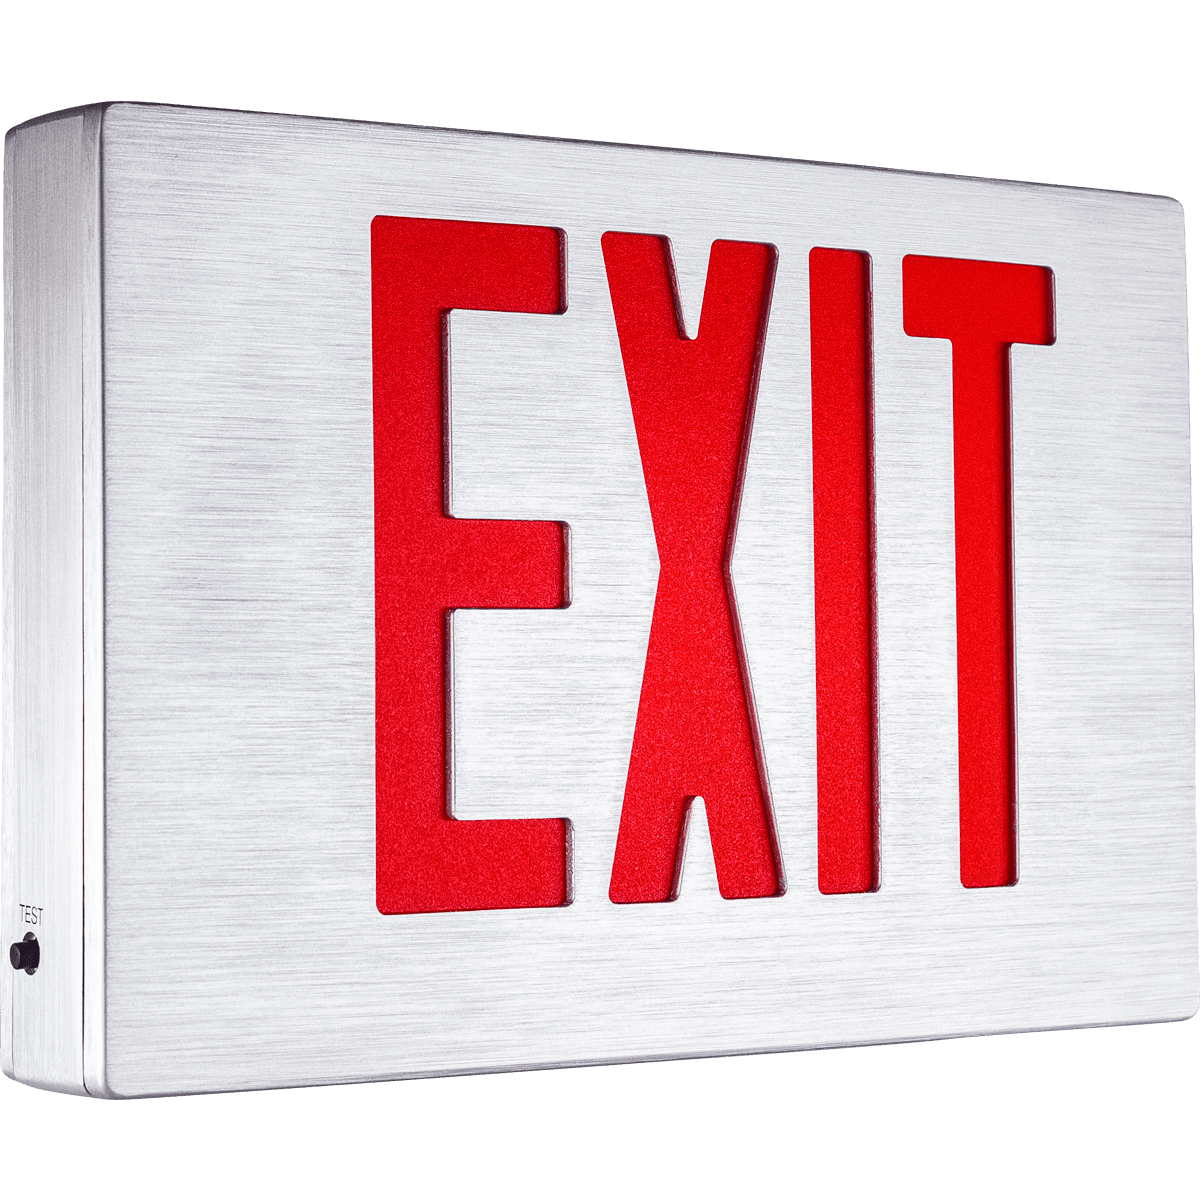 Alumaxus Exit Sign With Durable and Stylish Housing by Luxguild: Series: EEAE